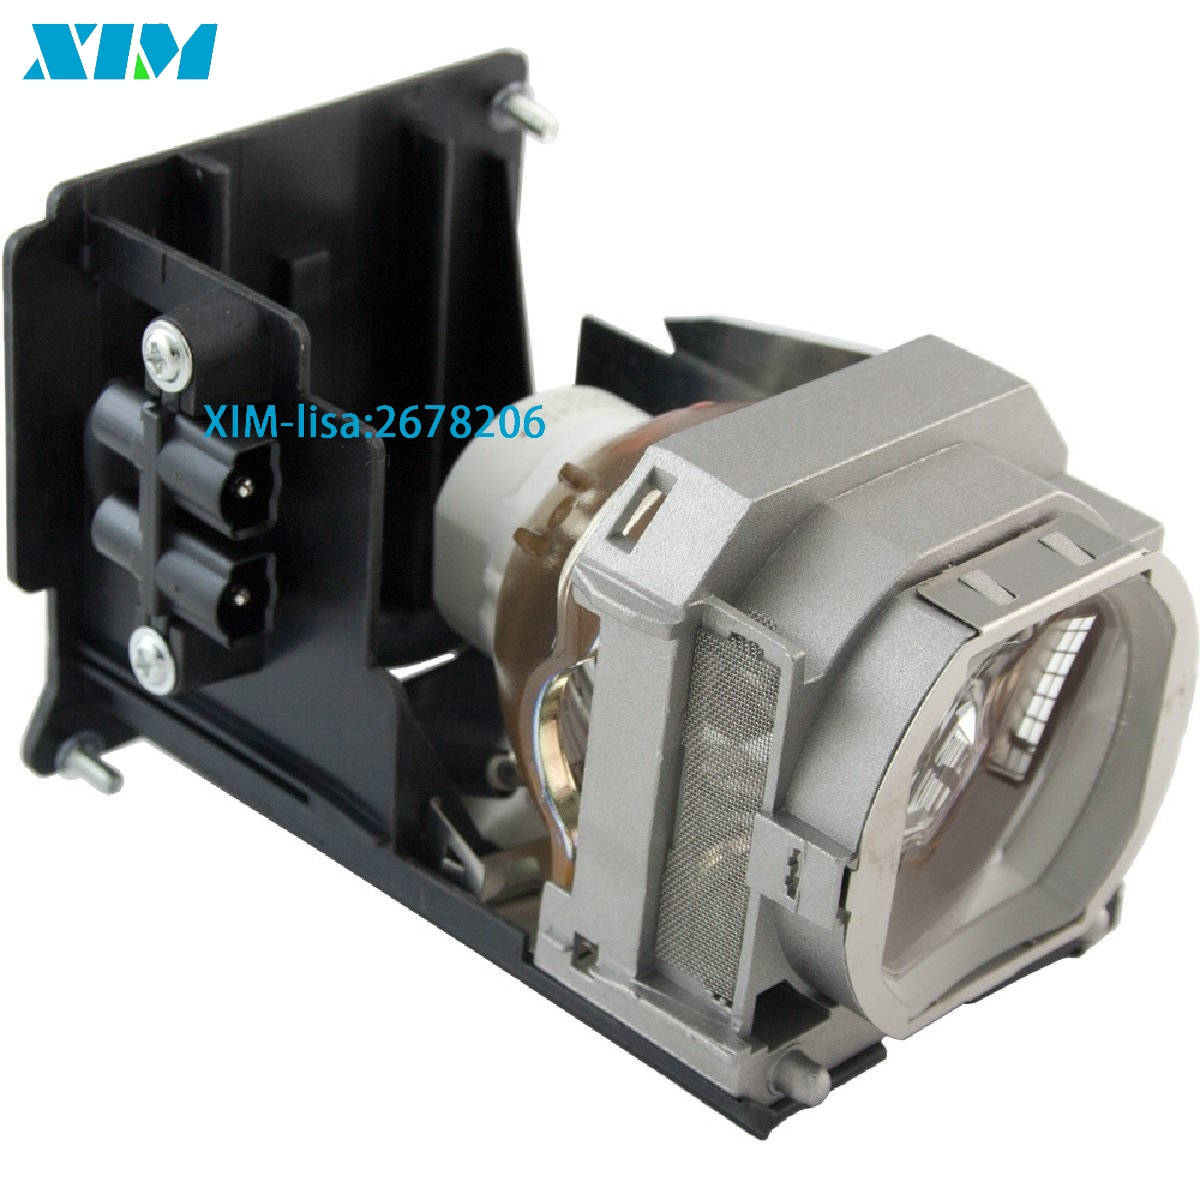 Replacement Projector Lamp with housing  VLT-XL550LP / 915D116O08 for MITSUBISHI XL550U / XL1550 / XL1550U / XL550 Projectors replacement projector lamp vlt xd3200lp 915a253o01 for mitsubishi wd3200u wd3300u xd3200u projectors